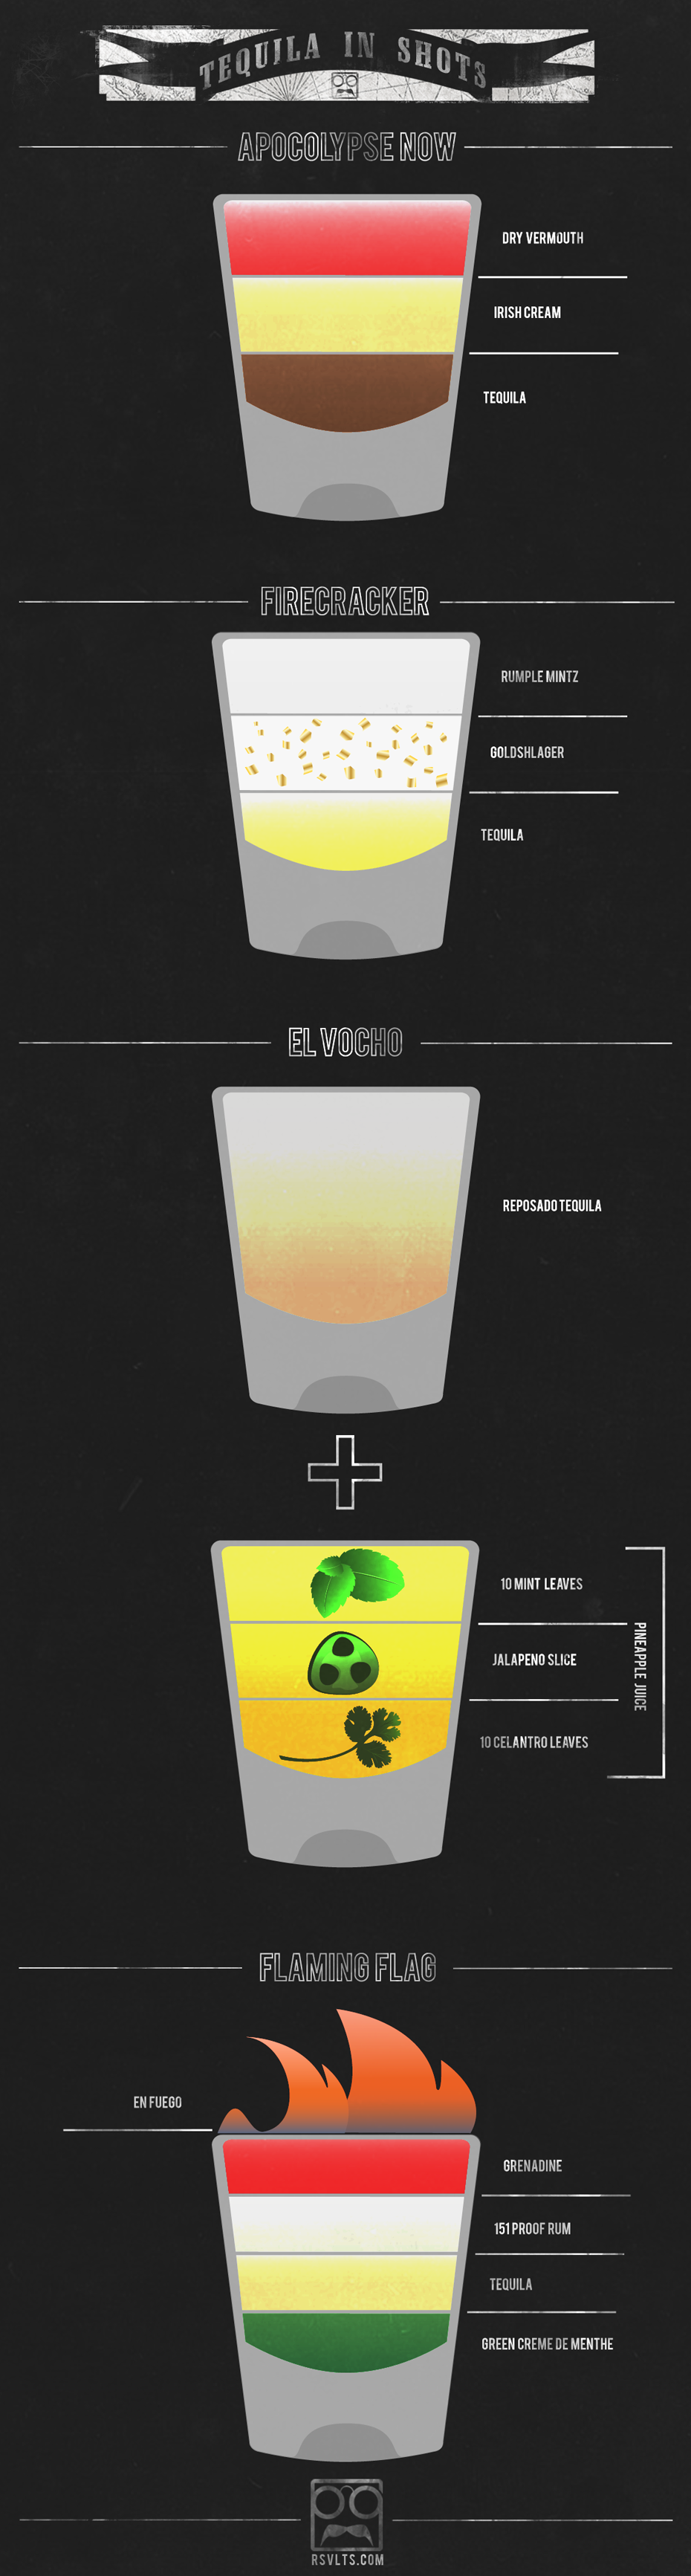 Here's a nifty #infographic of popular #tequila shots for #CincoDeMayo - http://finedininglovers.com/blog/food-drinks/cinco-de-mayo-tequila-shots-infographic/